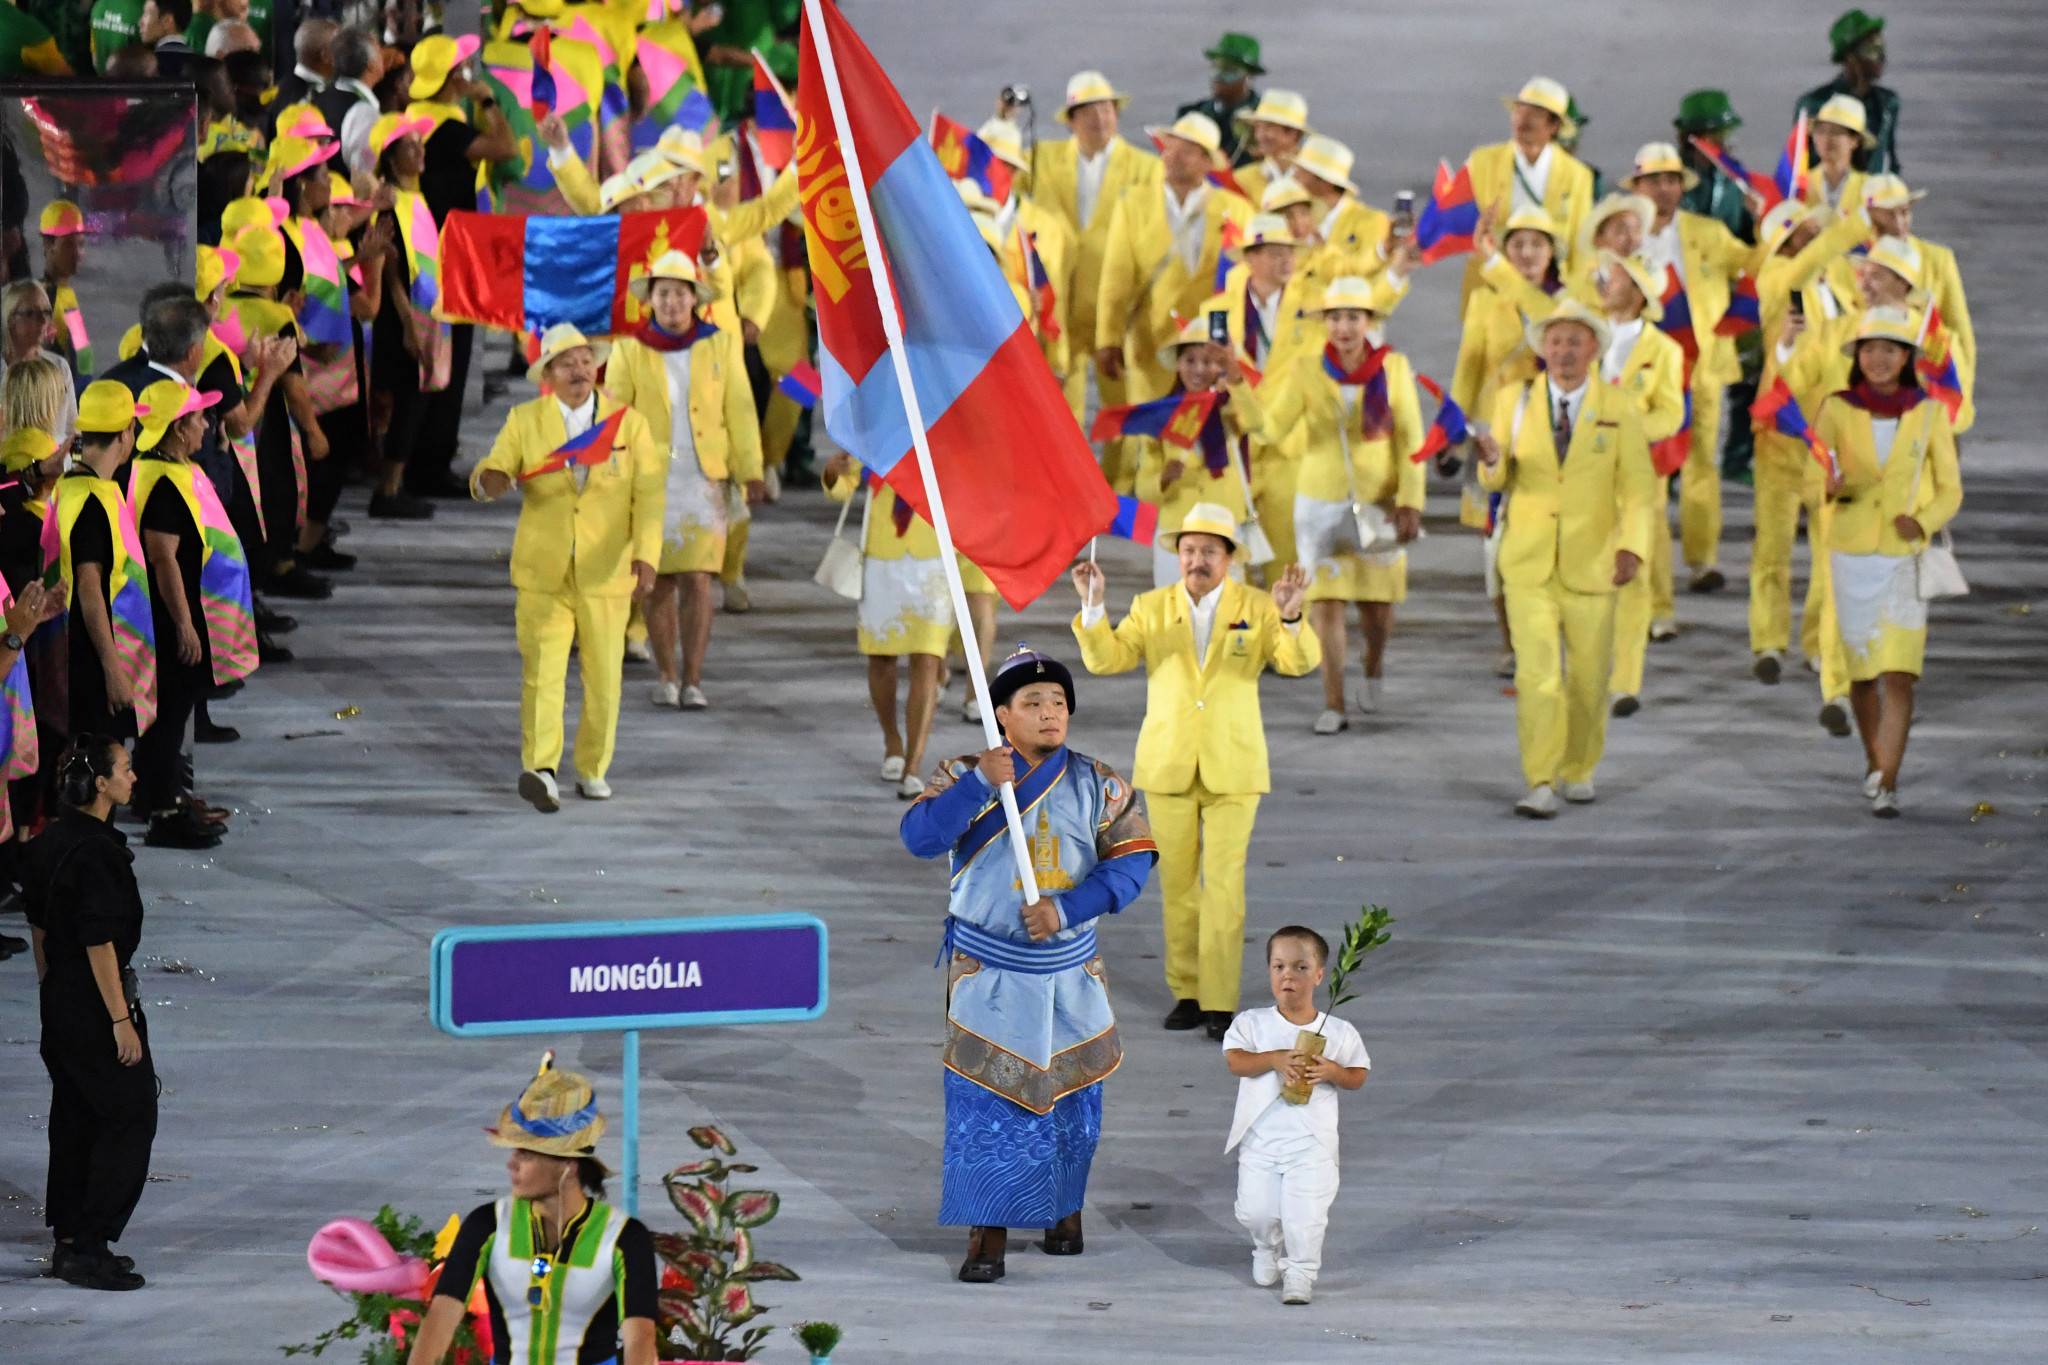 Mongolia National Olympic Committee award 17 athlete scholarships for Tokyo 2020